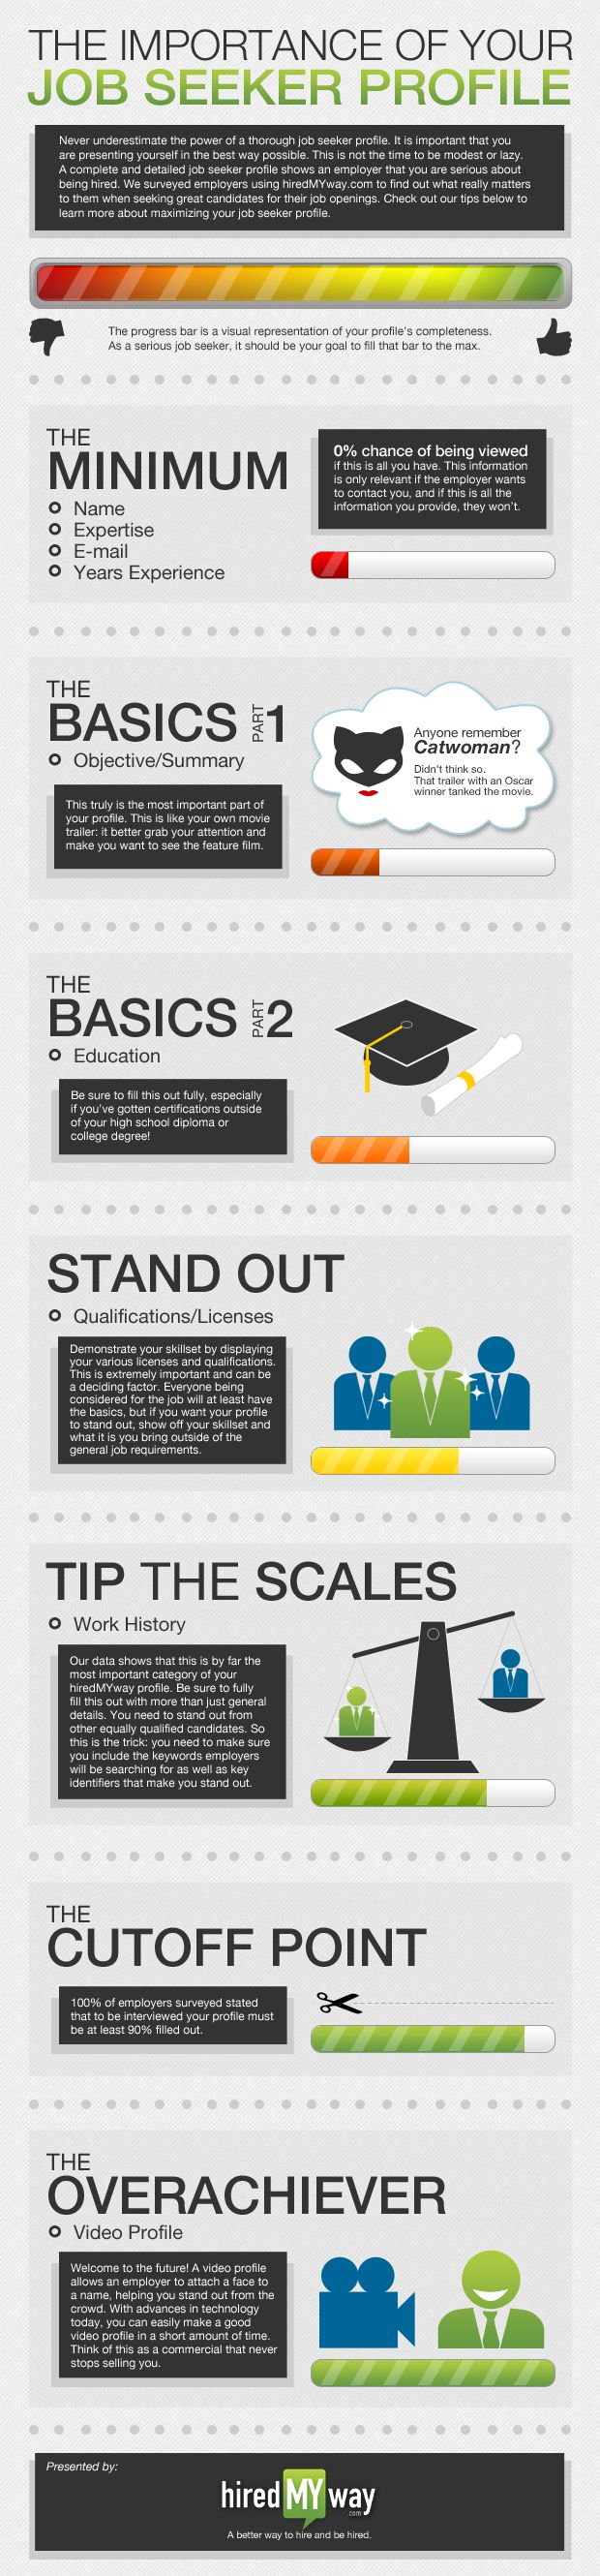 best images about job seeker tips interview job infographic filling out your online job seeker profile on and many other websites profiles you be overwhelmed by how much information they are